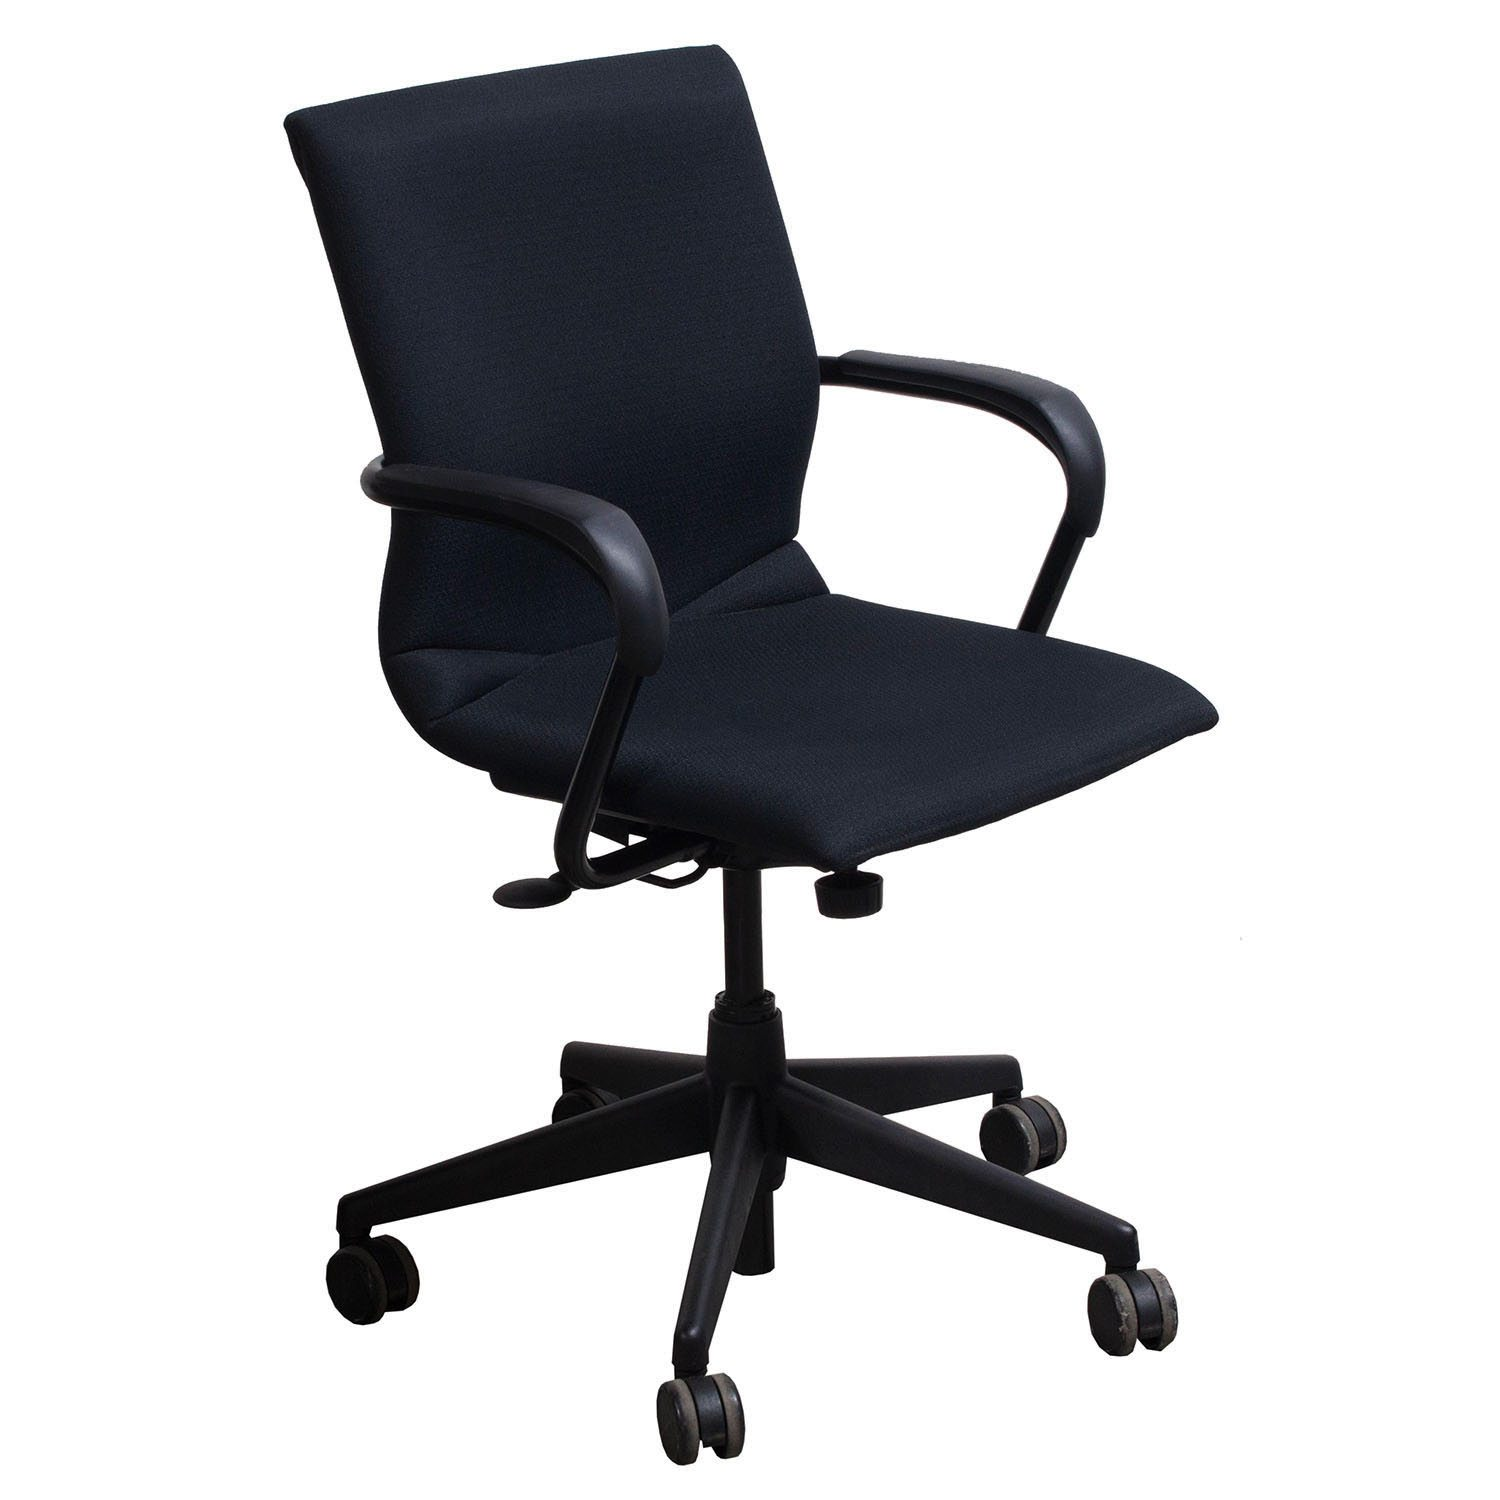 used conference room chairs brown leather swivel chair office boardroom meeting